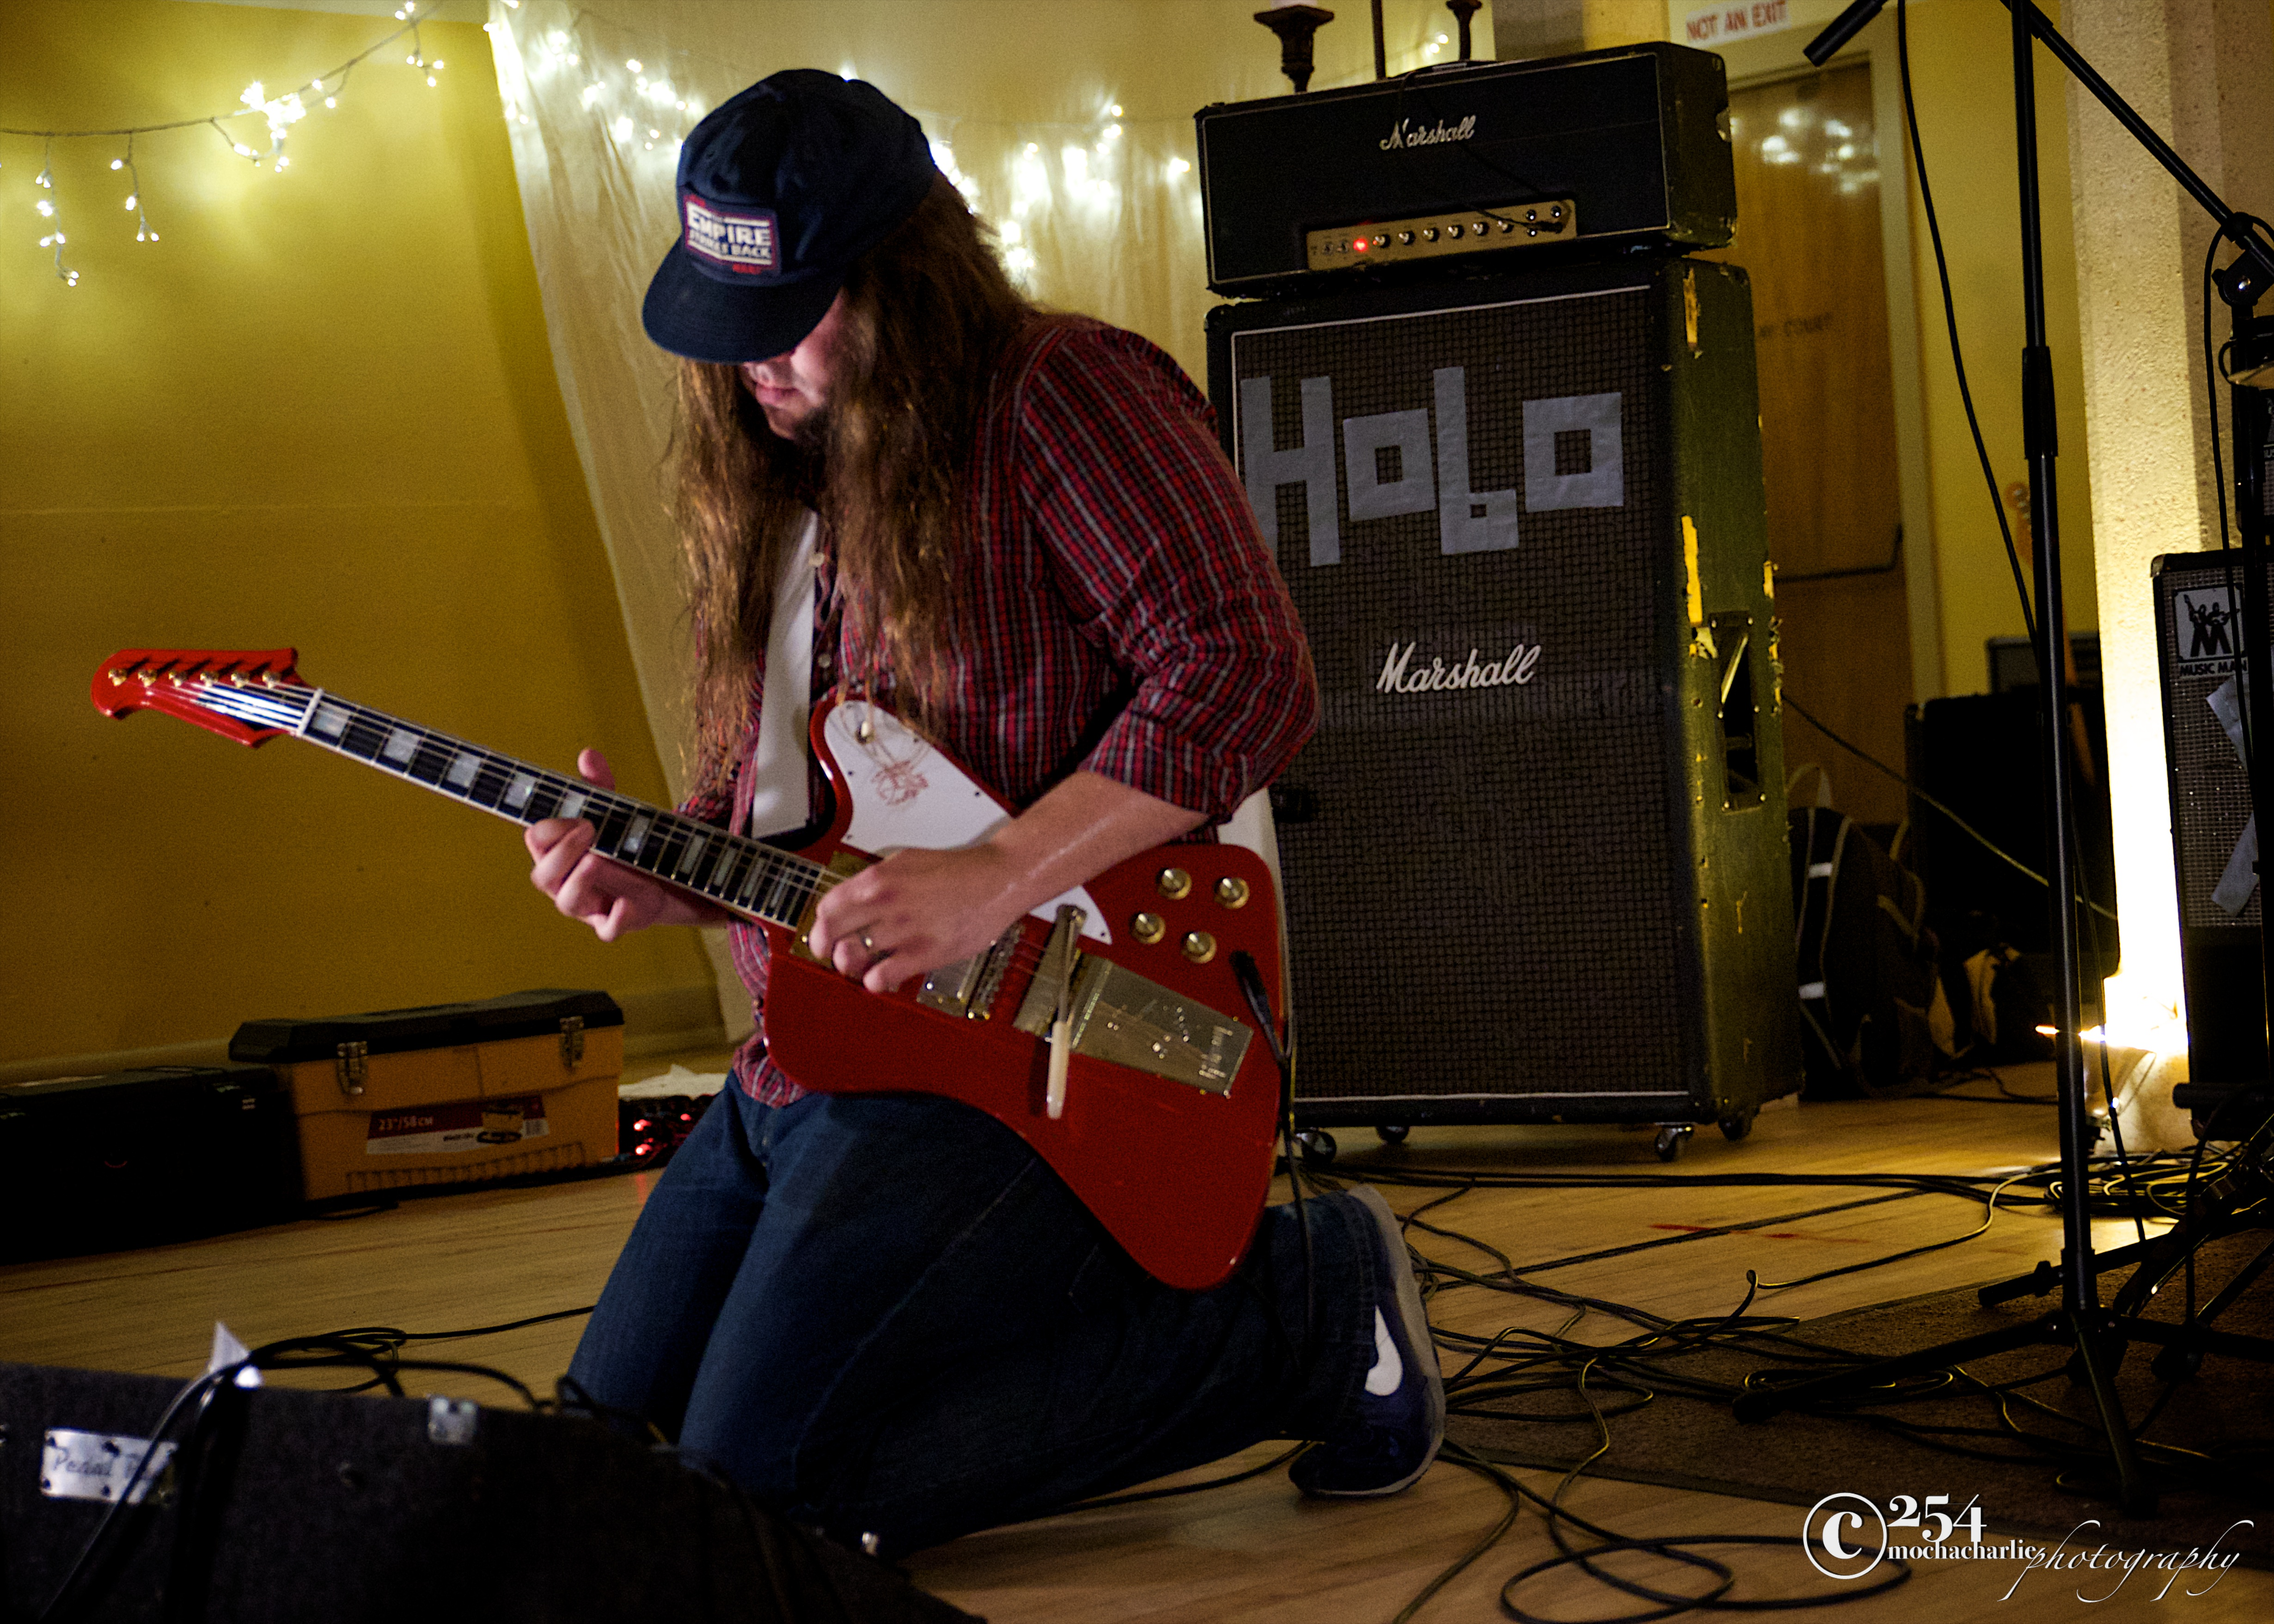 Hobosexual at Seattle Secret Shows (Photo by Mocha Charlie)